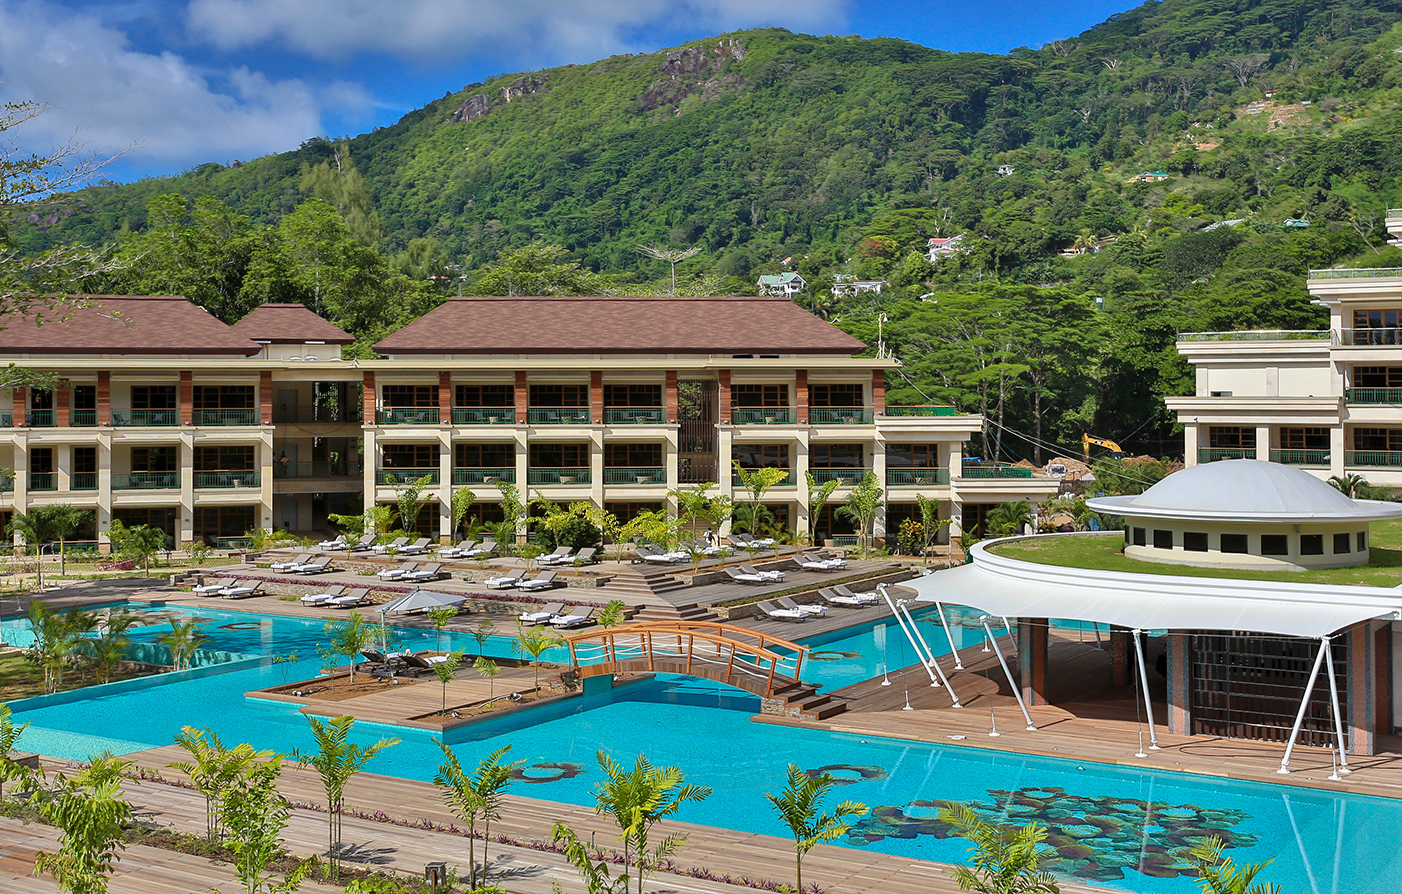 Luxury hotels and resorts preferred hotels resorts for Small luxury hotels of the world group